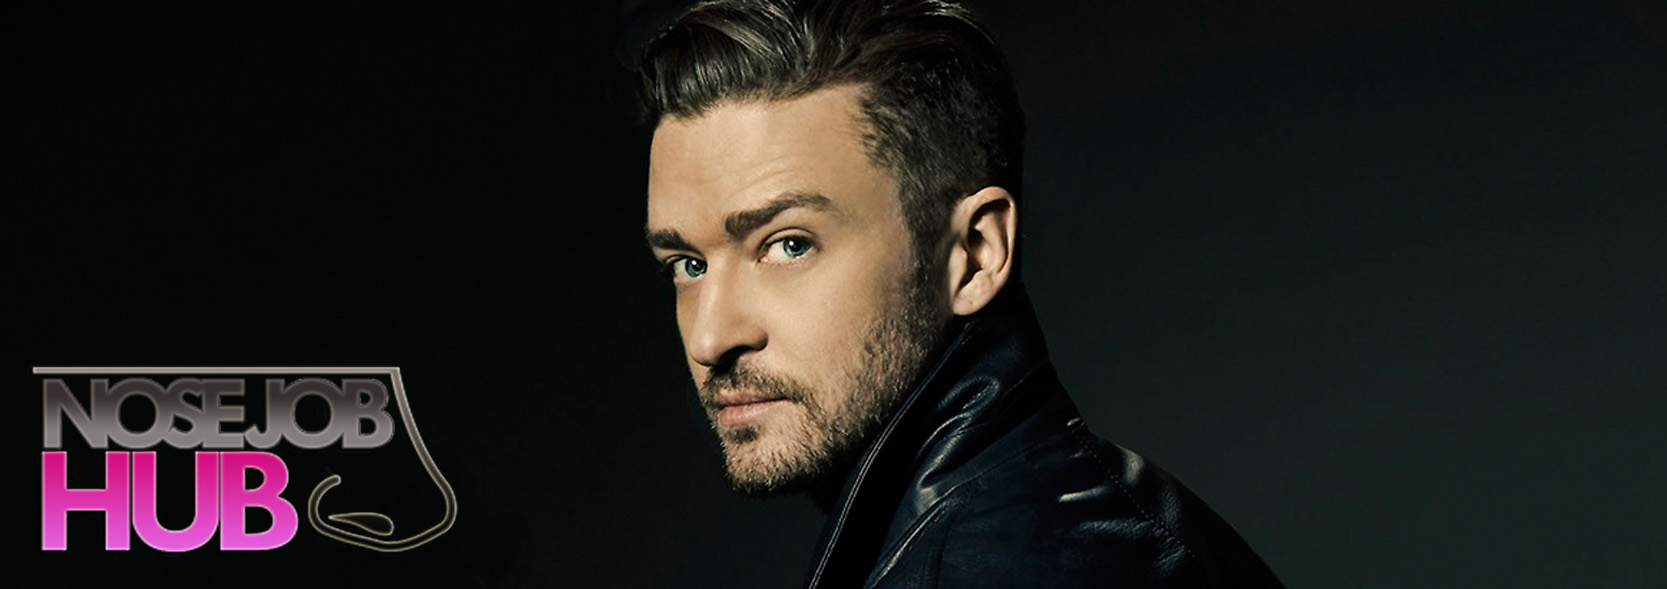 Justin Timberlake Before and After Nose Job